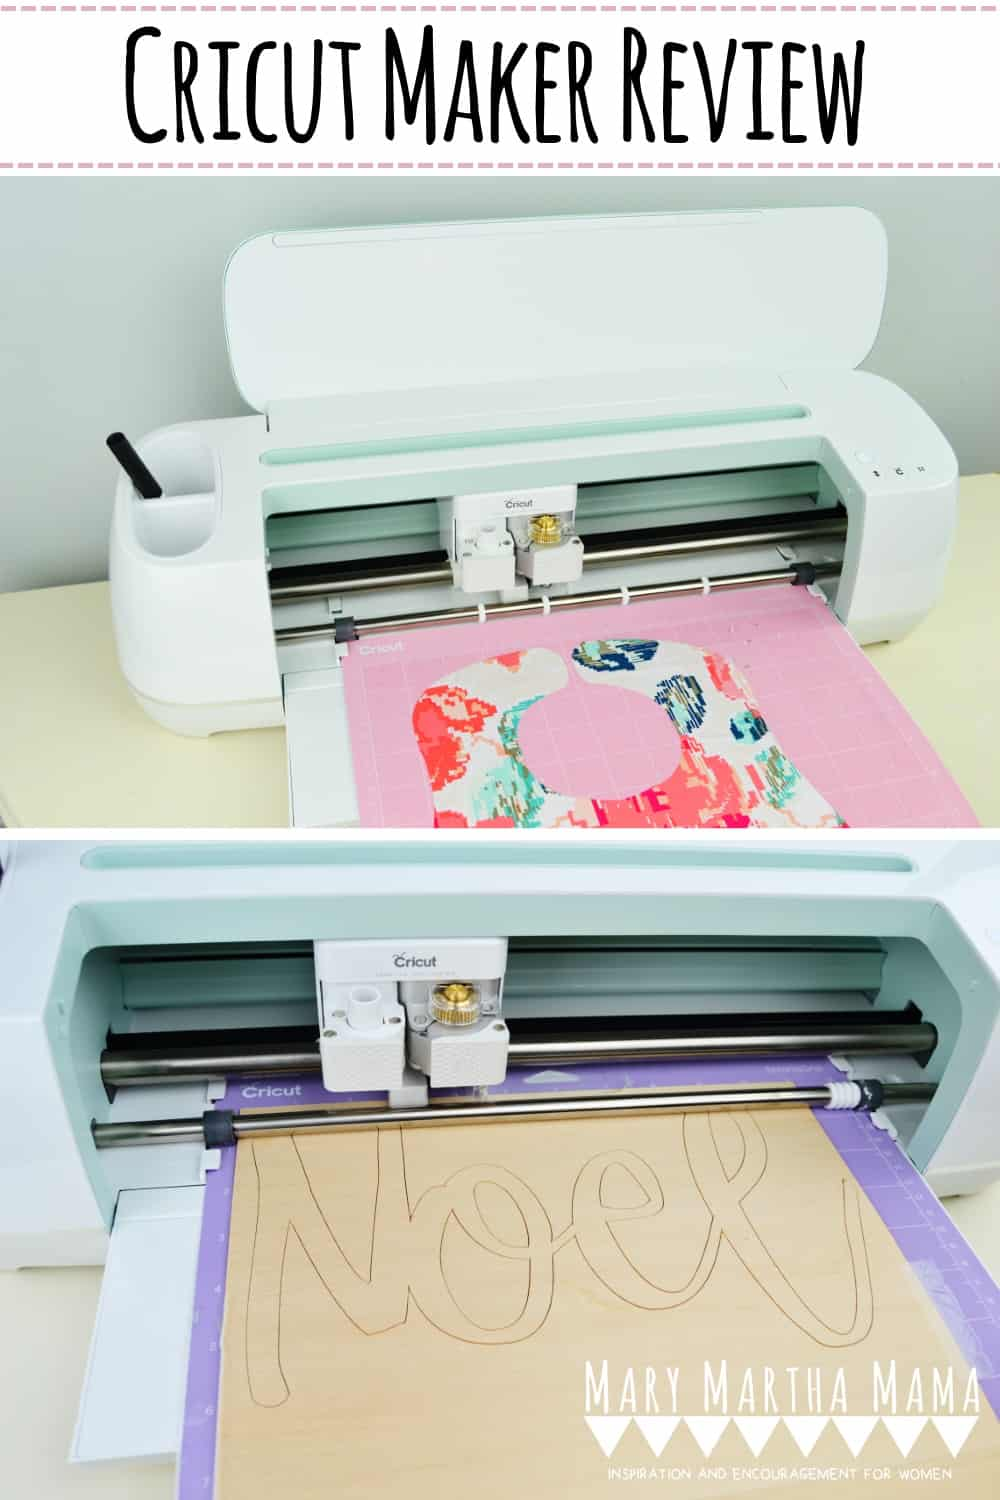 Cricut Maker Review- Read all about what the Cricut Maker can cut and how well it cuts in addition to how easy it is to use. #cricutmakerreview #cricutmaker